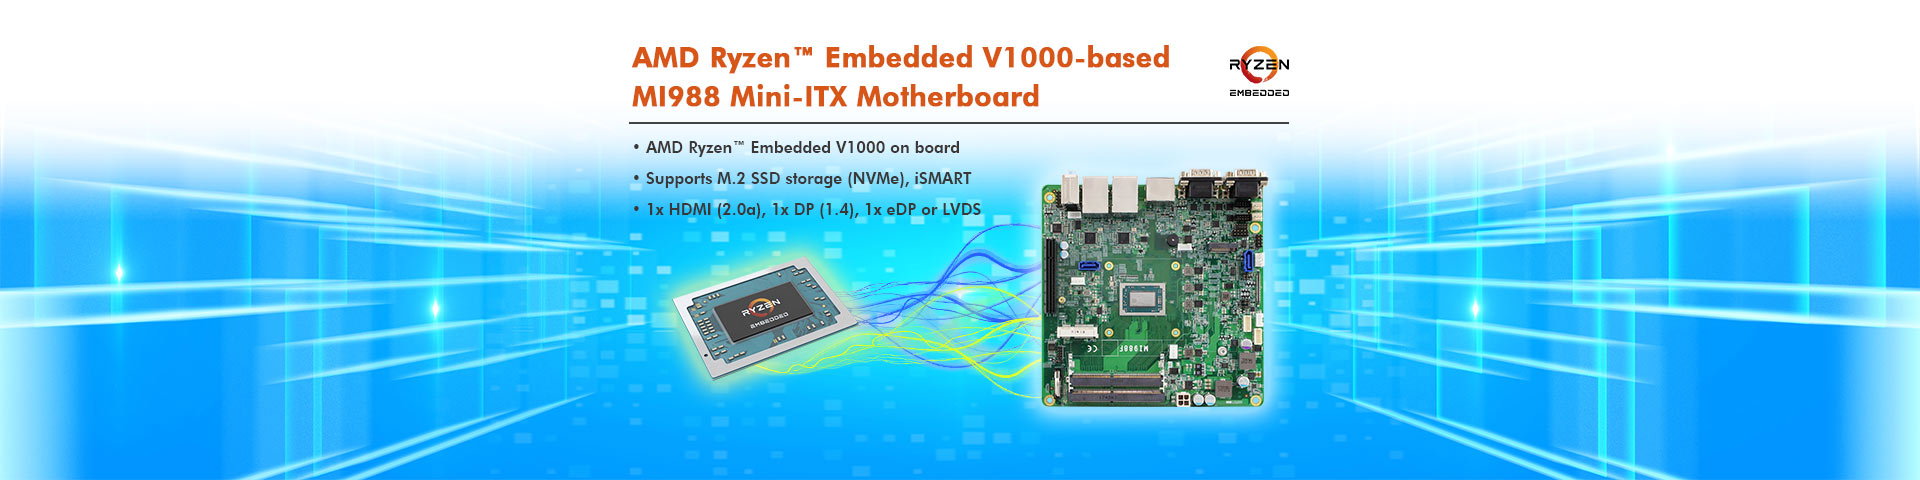 IBASE Unveiled AMD Ryzen™ Embedded V1000-based MI988 Mini-ITX Motherboard